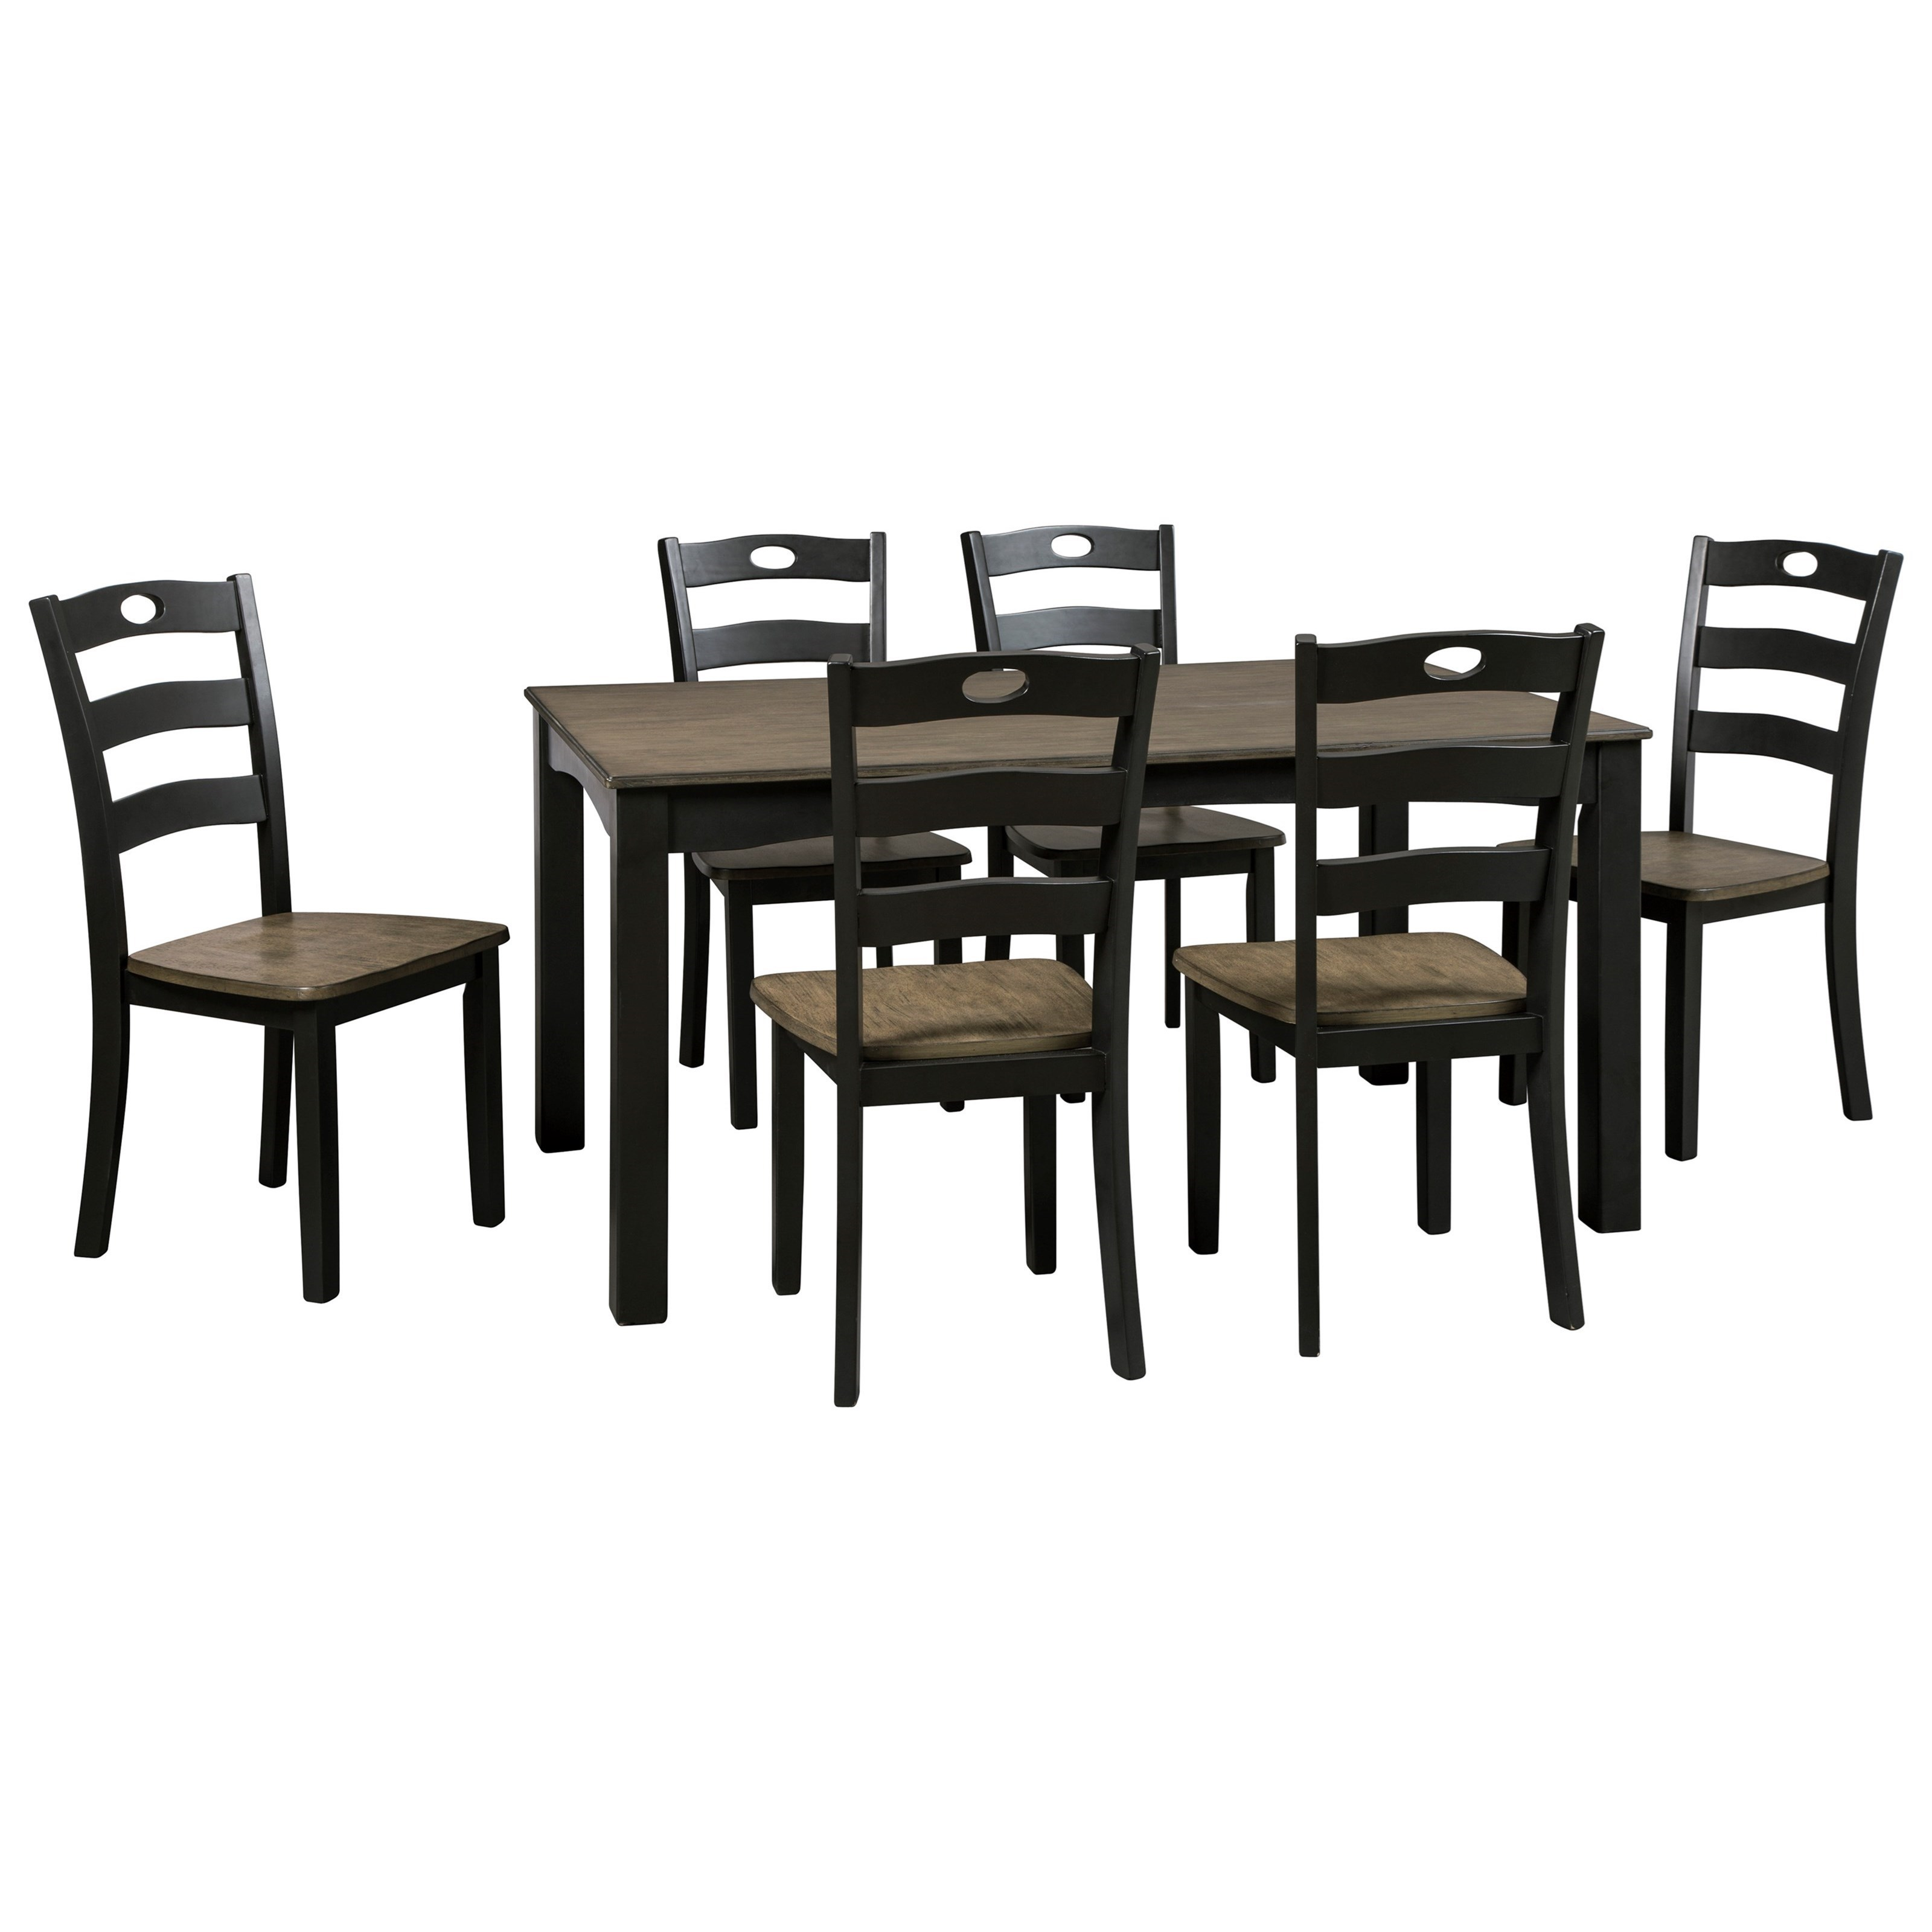 Signature Design by Ashley Frost7-Piece Dining Room Table Set ...  sc 1 st  Becker Furniture World & Signature Design by Ashley Frost D338-425 Two-Tone Finish 7-Piece ...